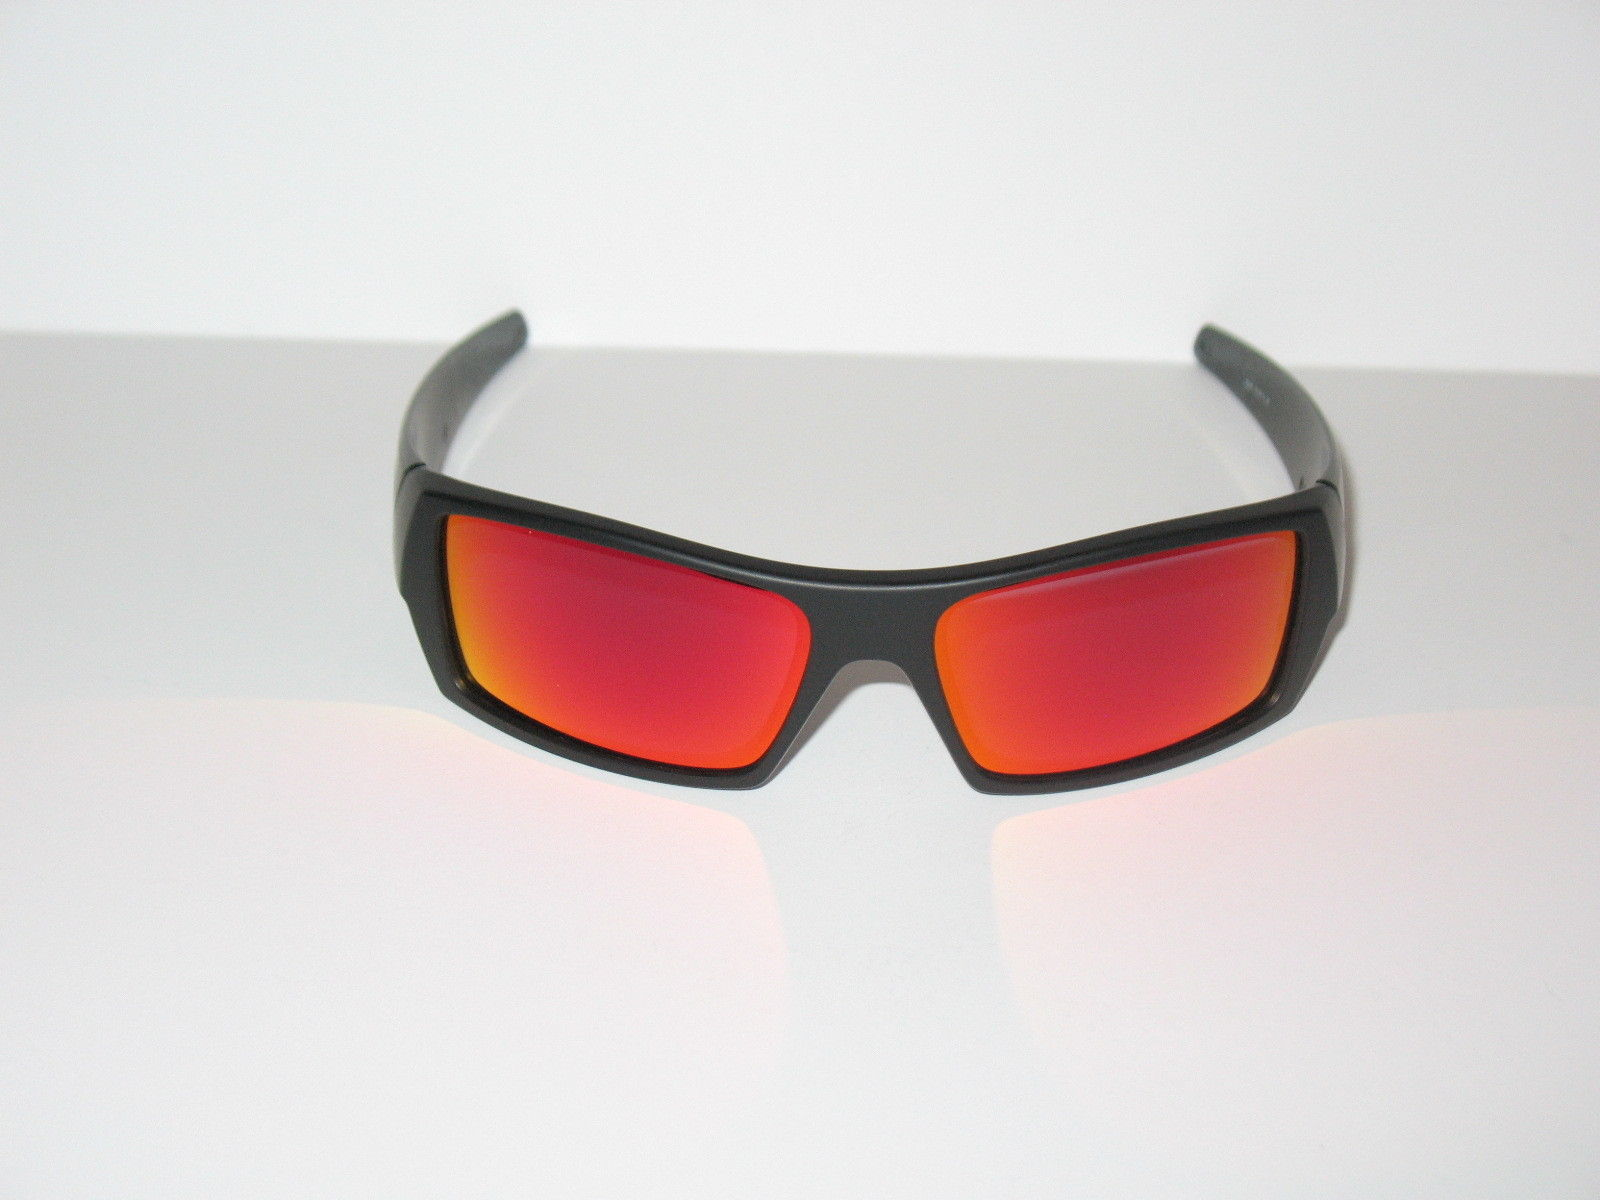 a7bd09cbc14 57. 57. Previous. OAKLEY GASCAN MATTE BLACK FRAME W  RUBY IRIDIUM LENSES. OAKLEY  GASCAN MATTE BLACK FRAME ...